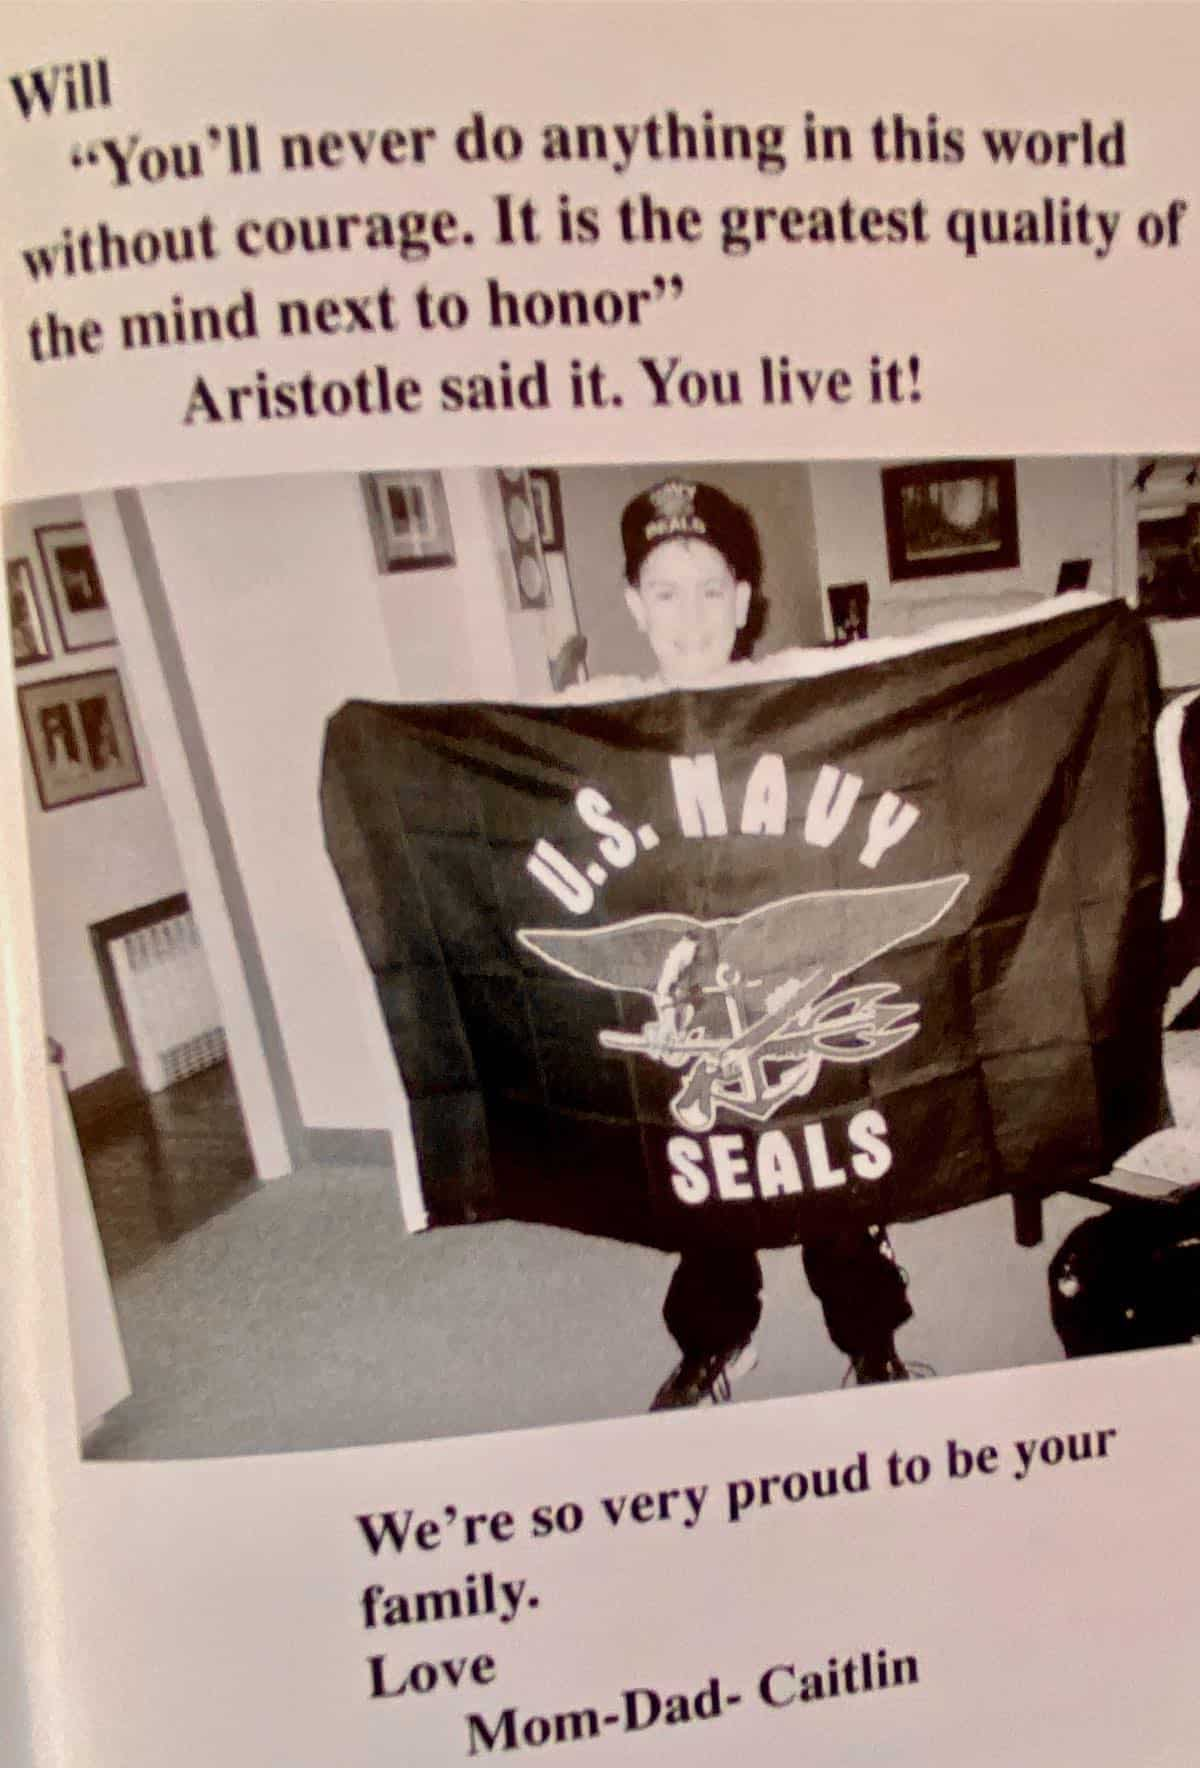 Our letter to Will. Will holding Navy SEALS sign